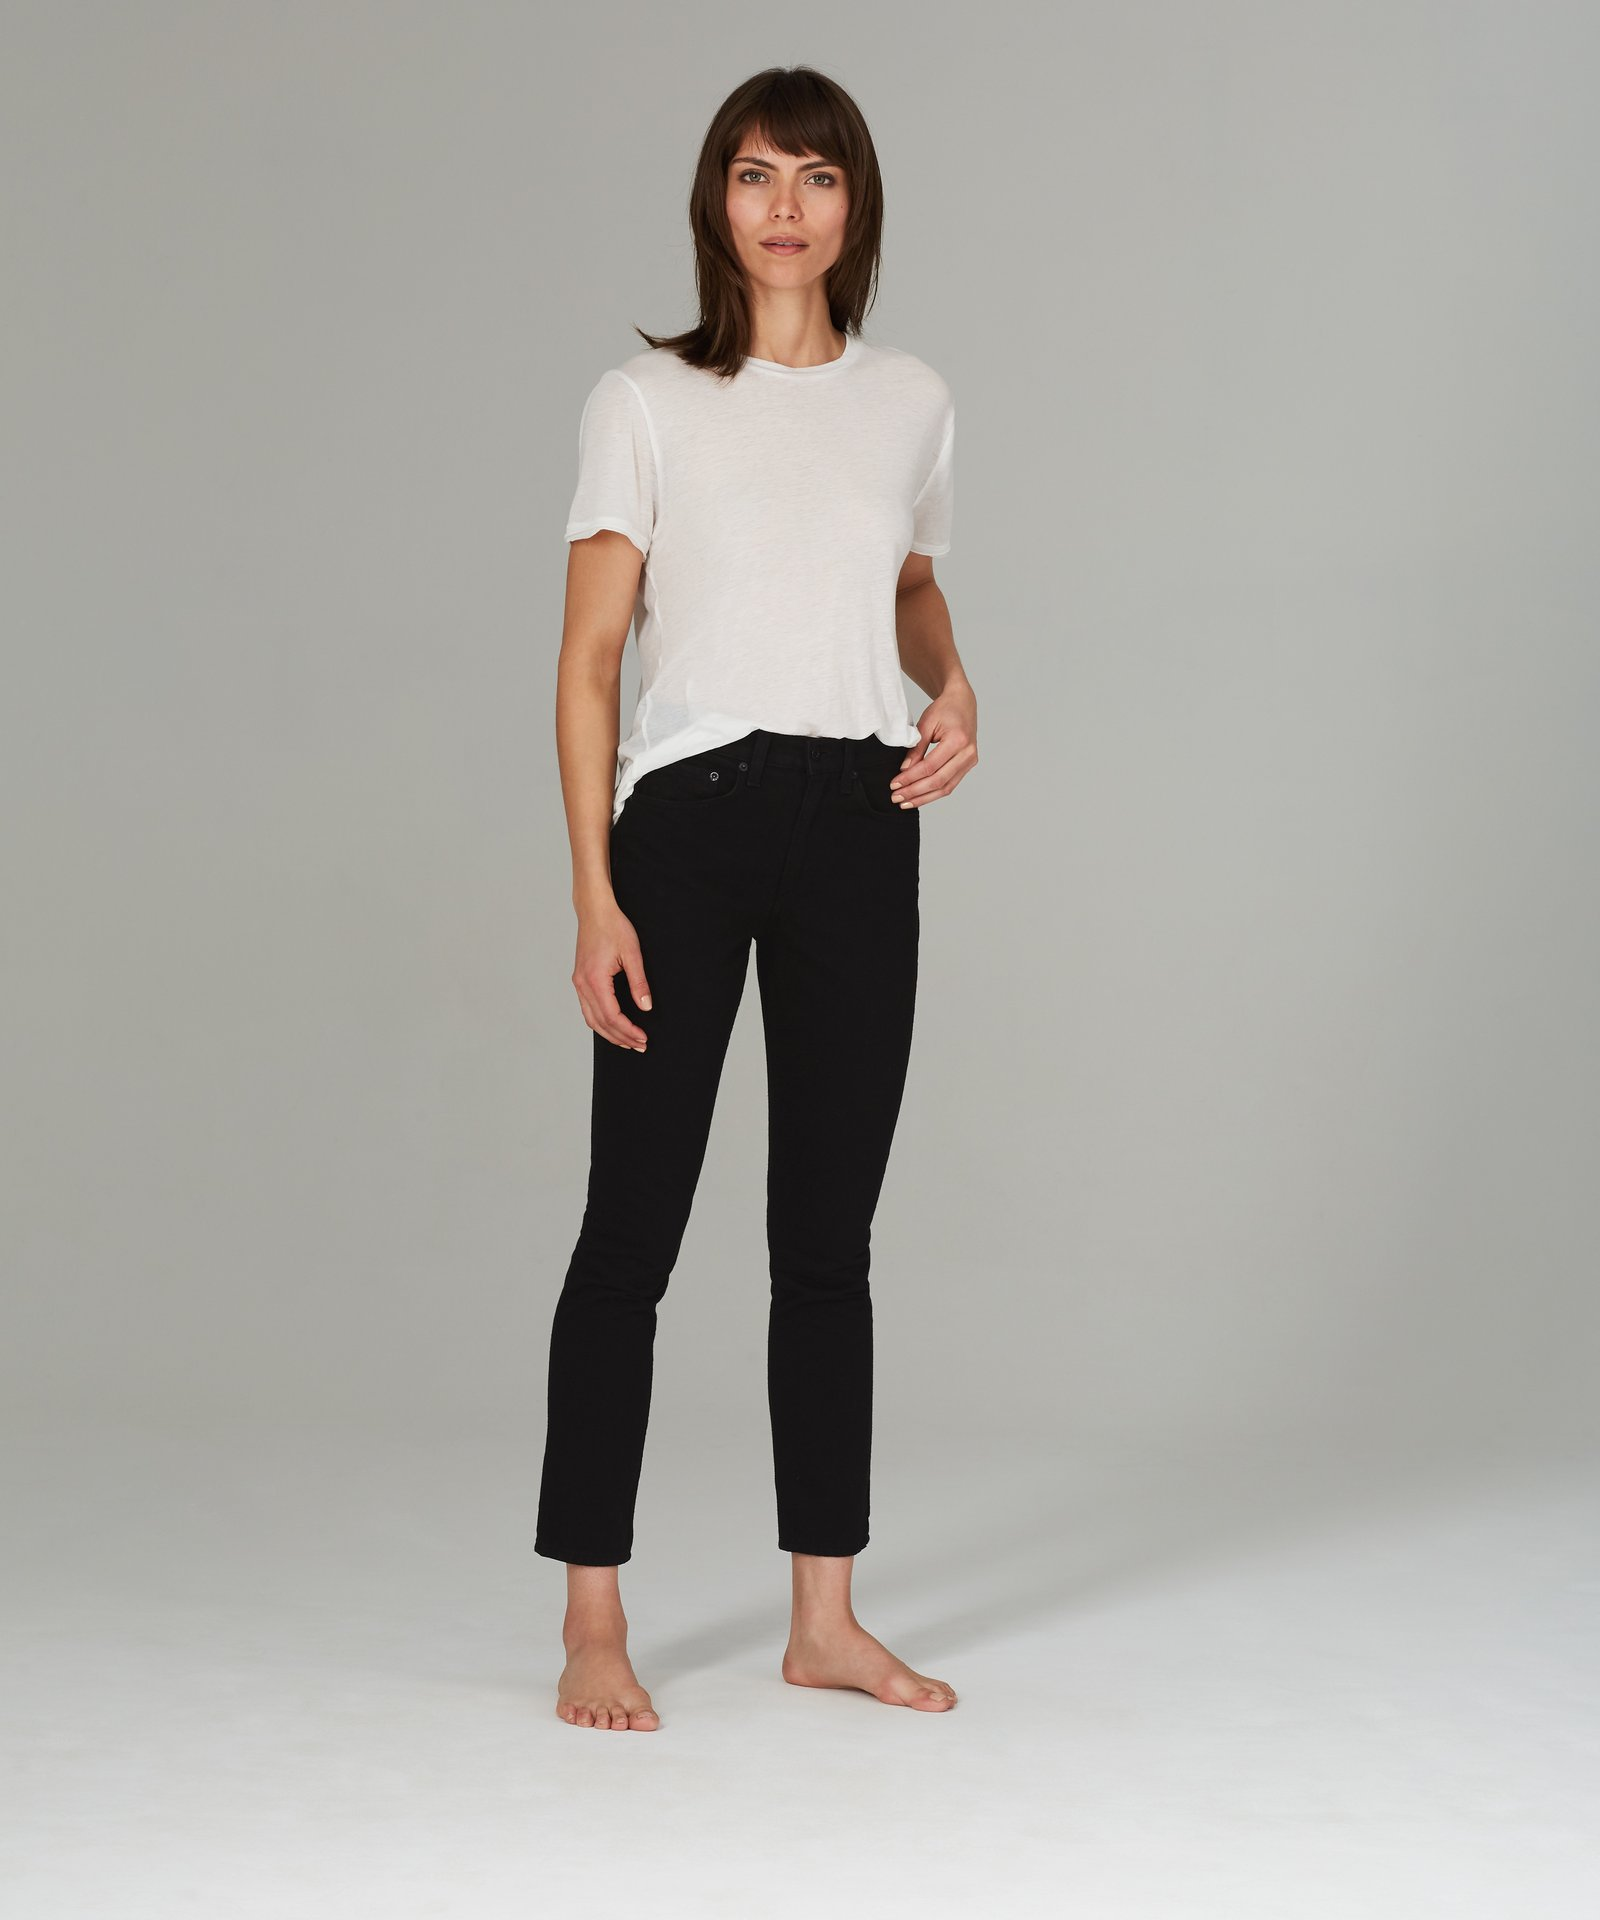 cropped jeans, skinny jeans, denim, black denim, high rise, askk ny